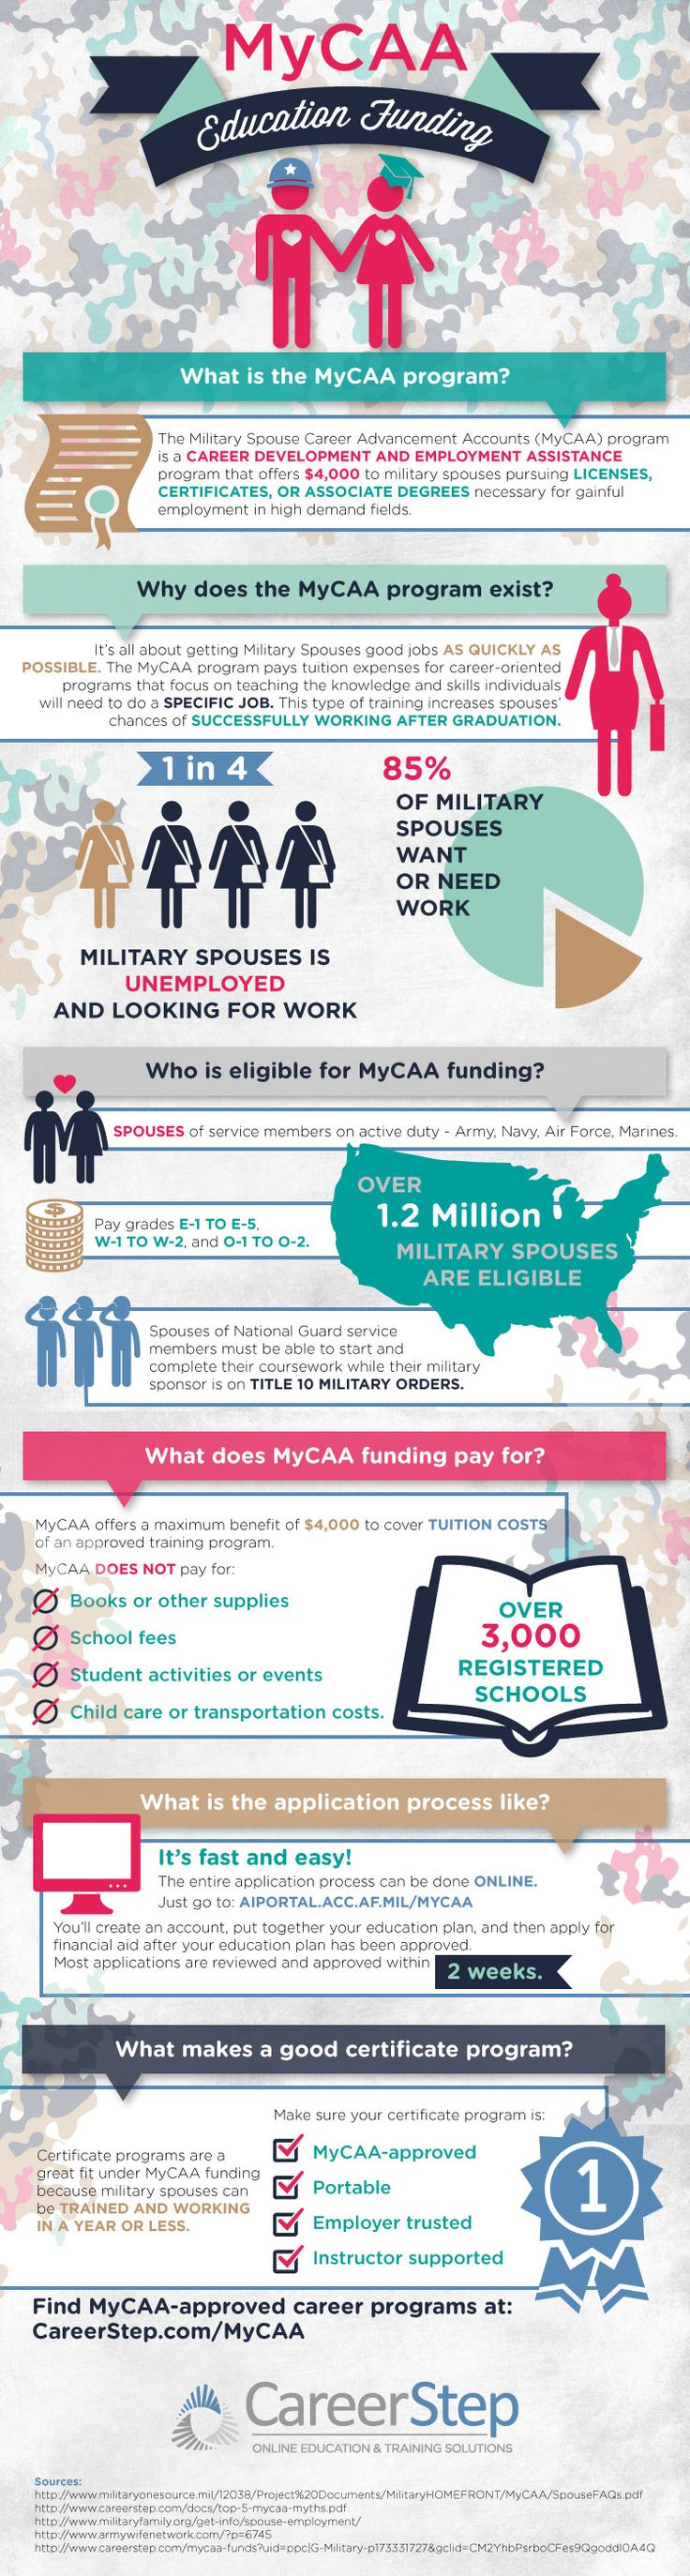 Everything you need to know about MyCAA from Career Step